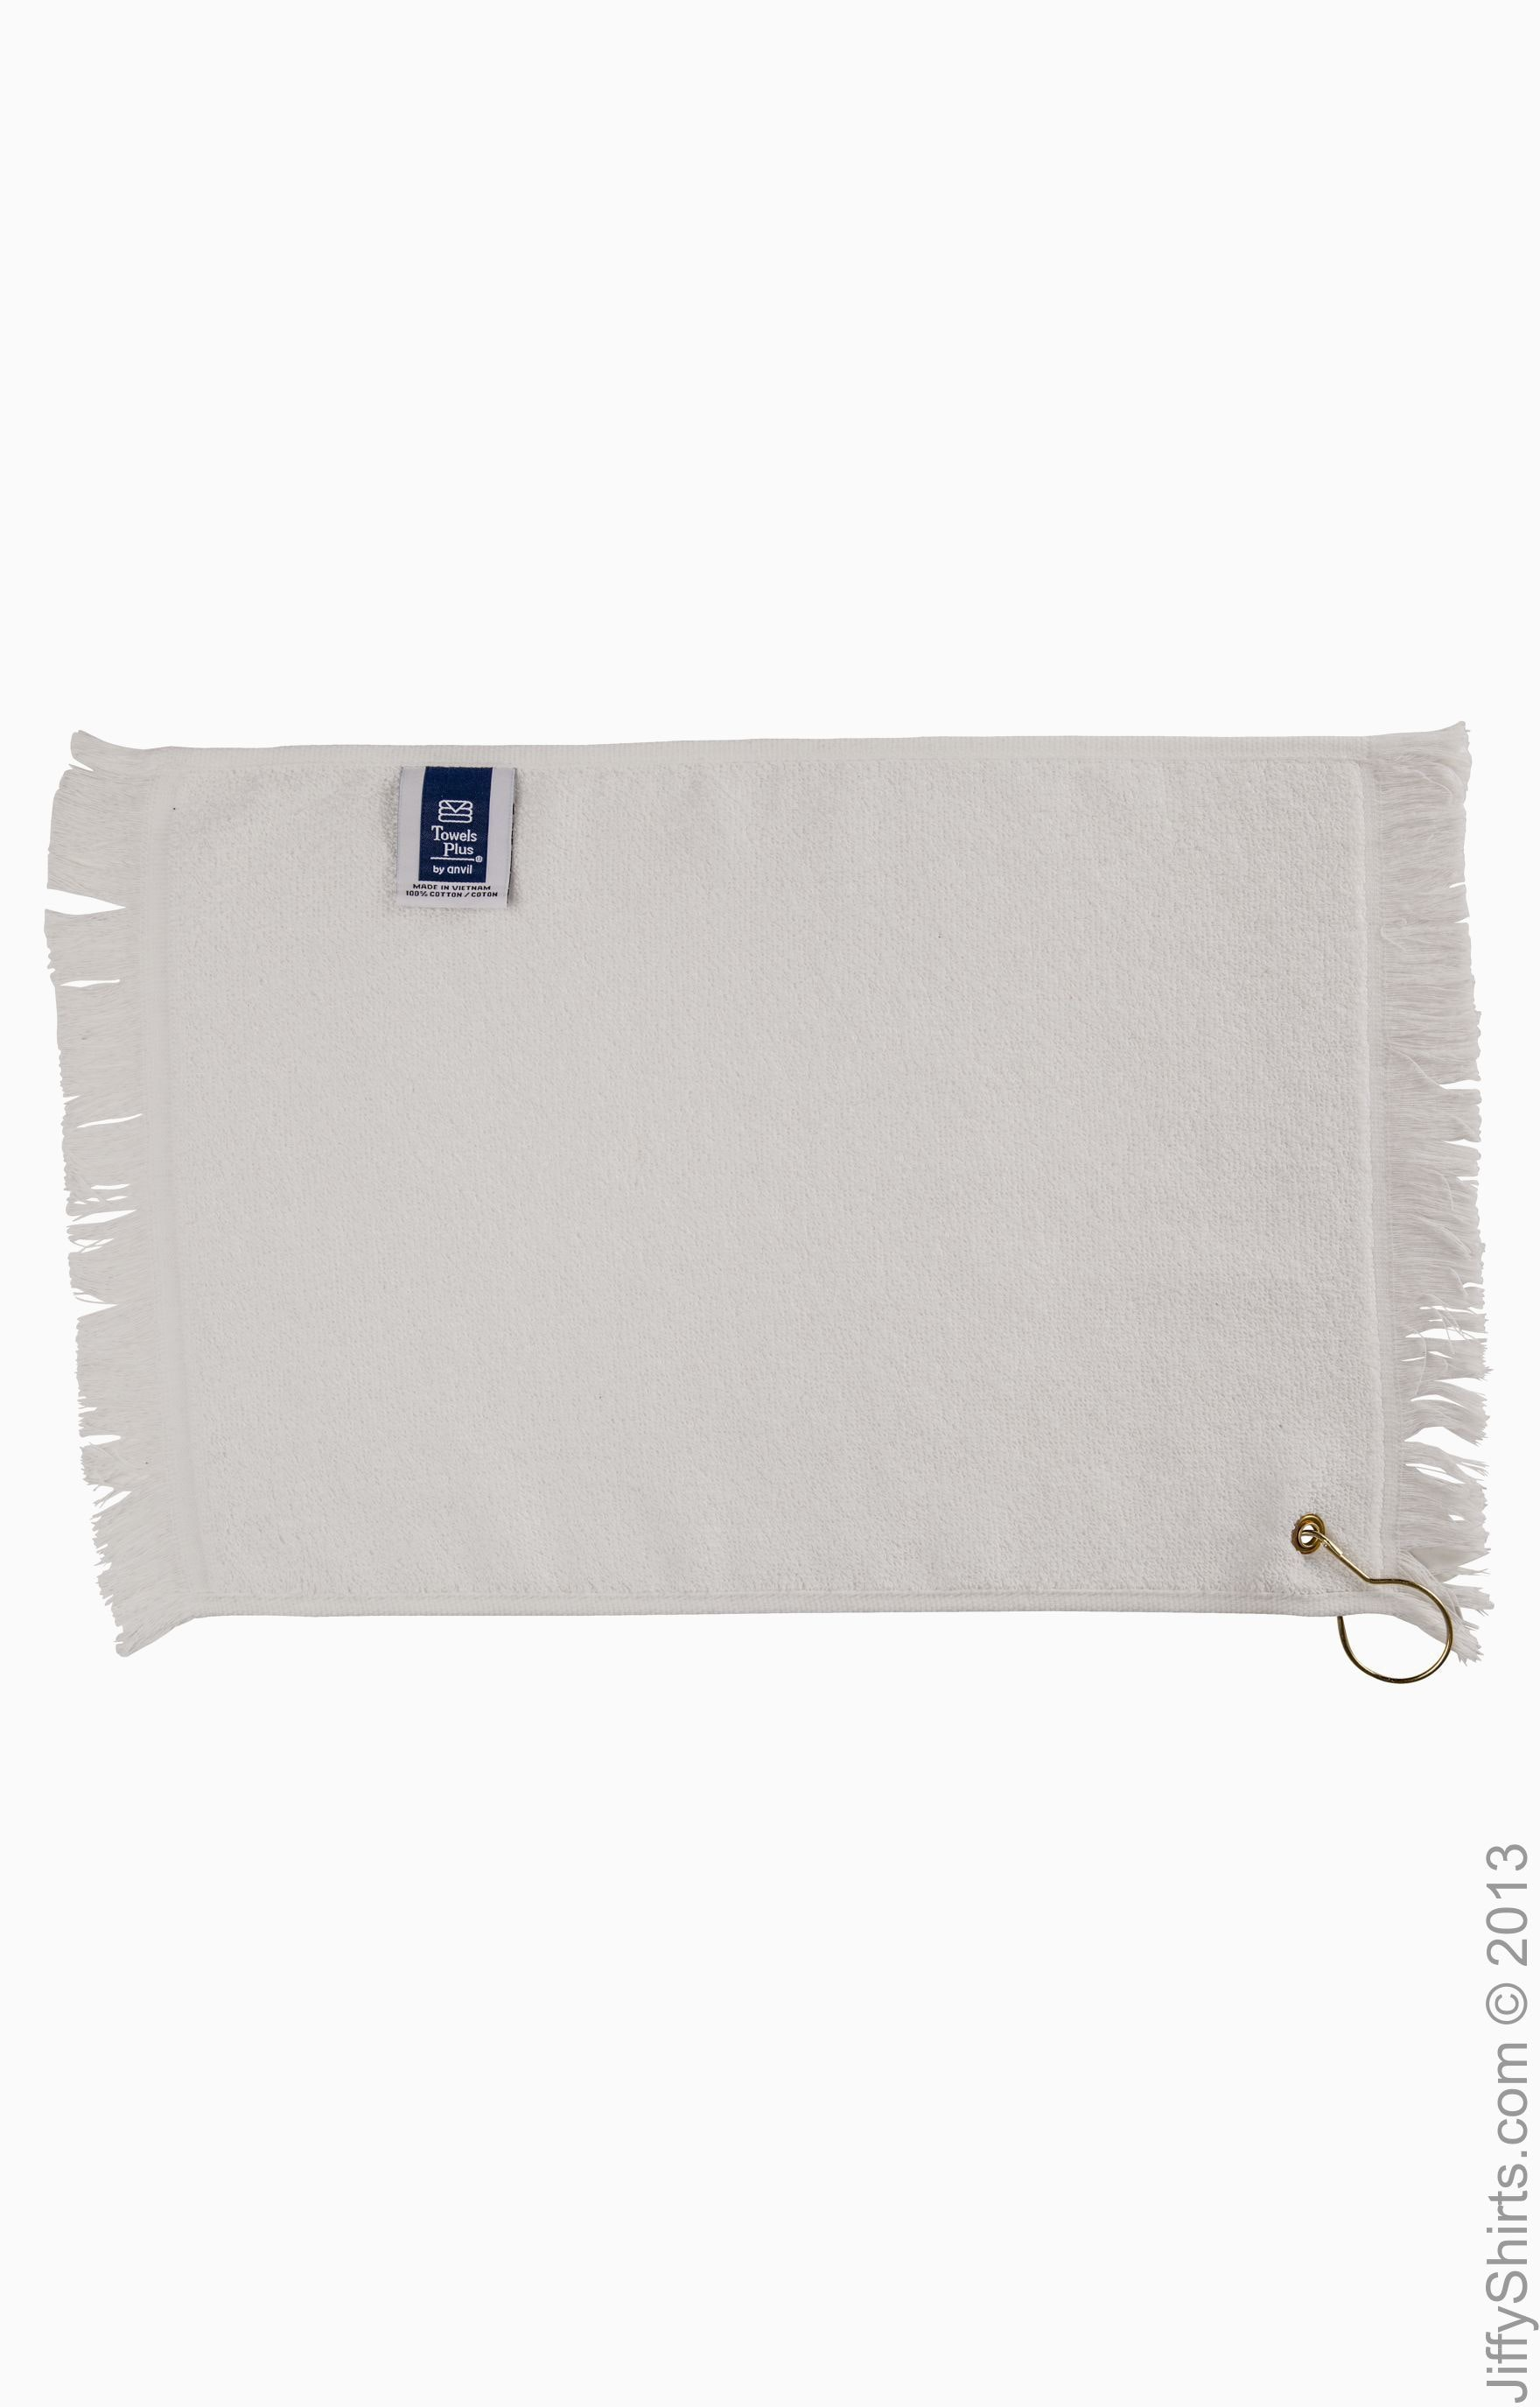 Towels Plus T60GH White